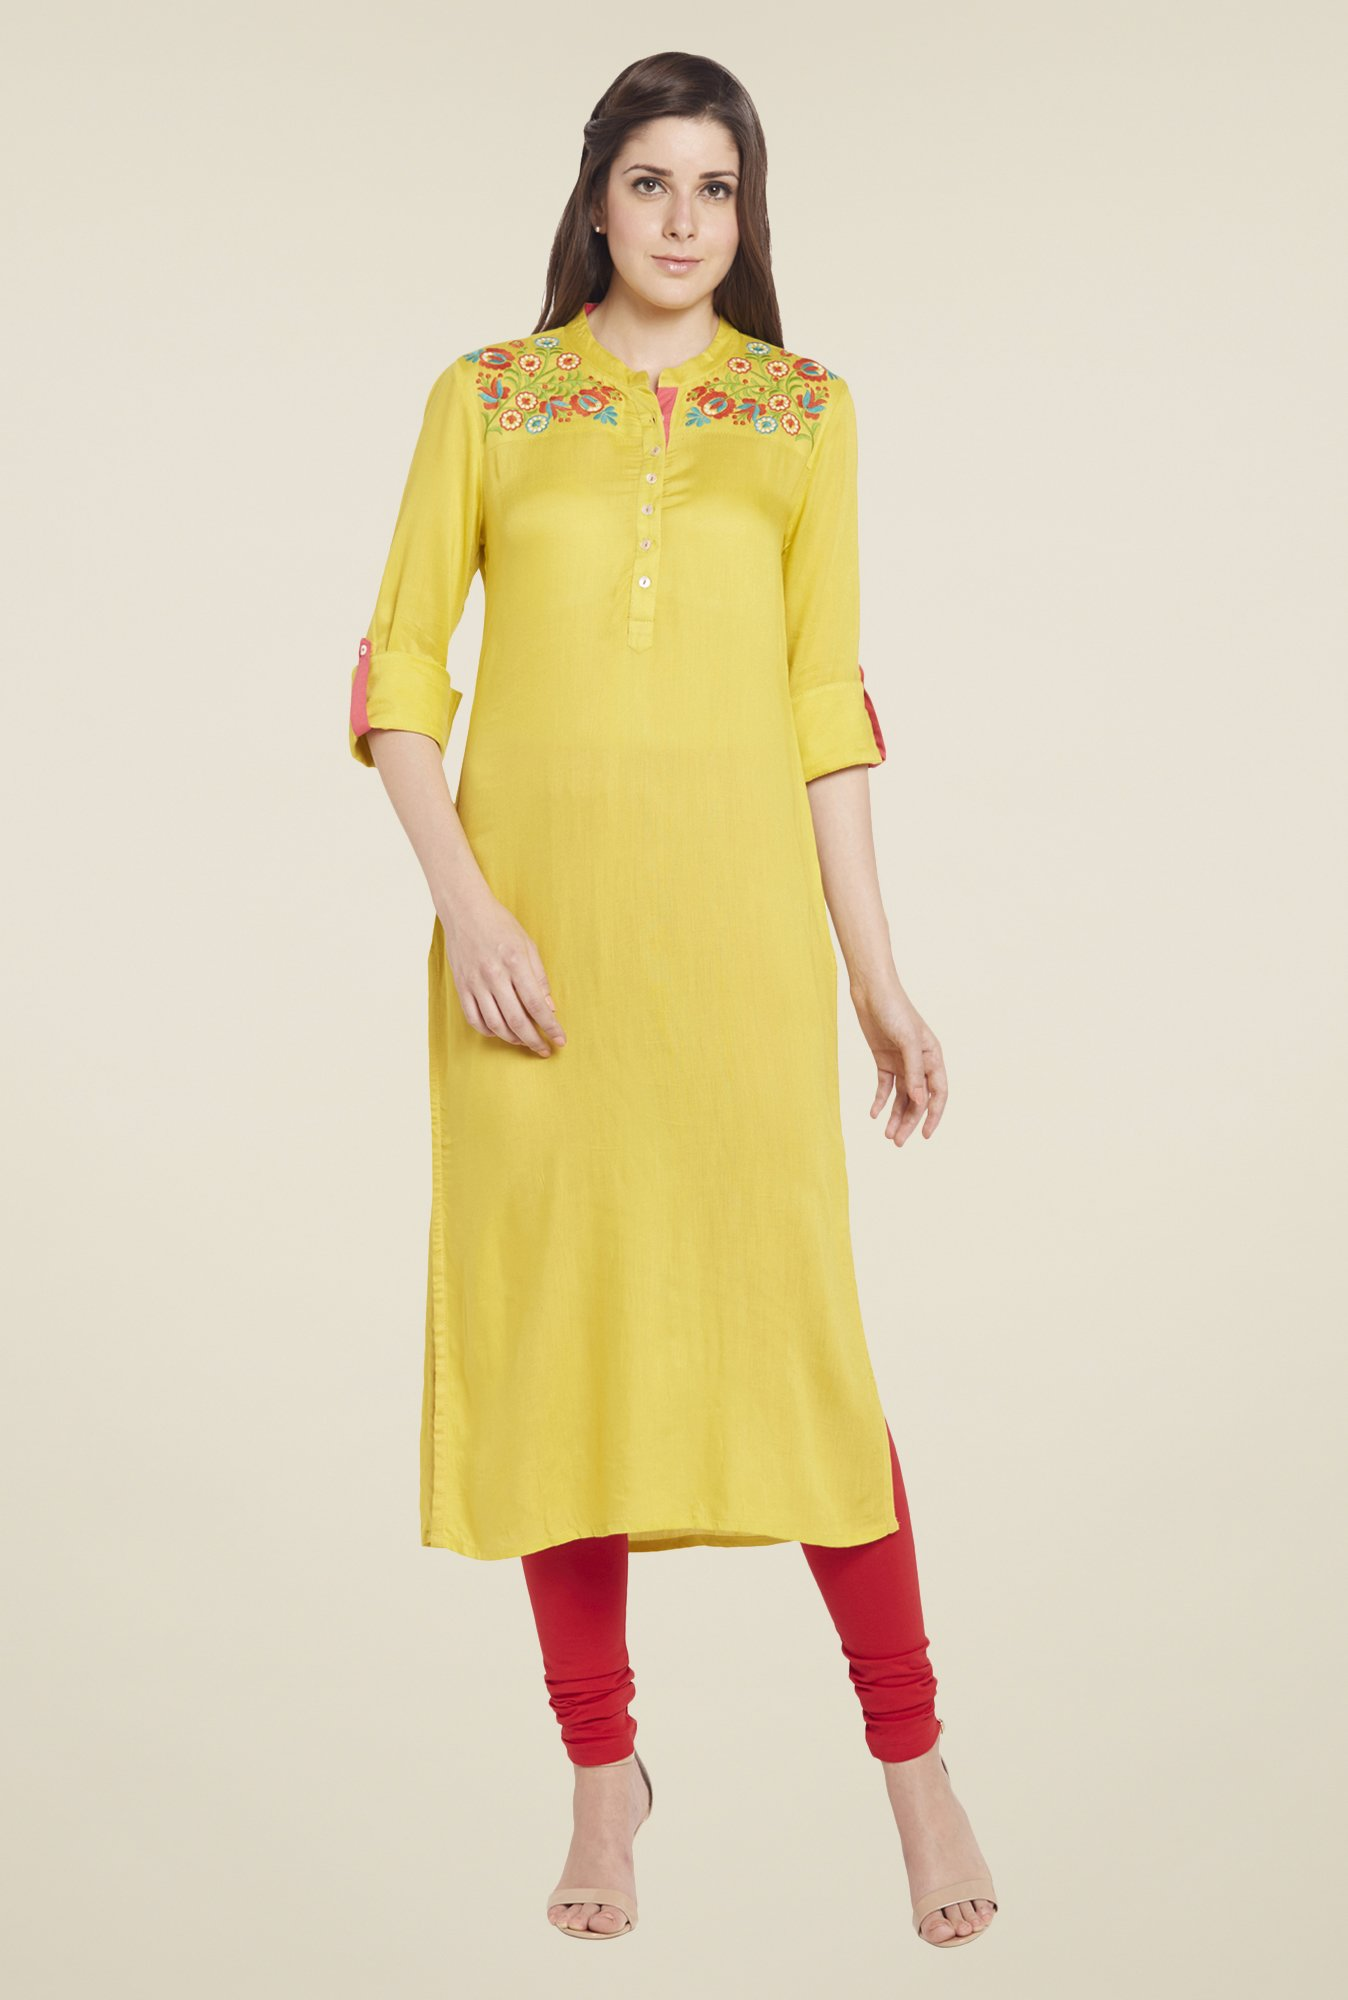 Globus Yellow Solid Kurta